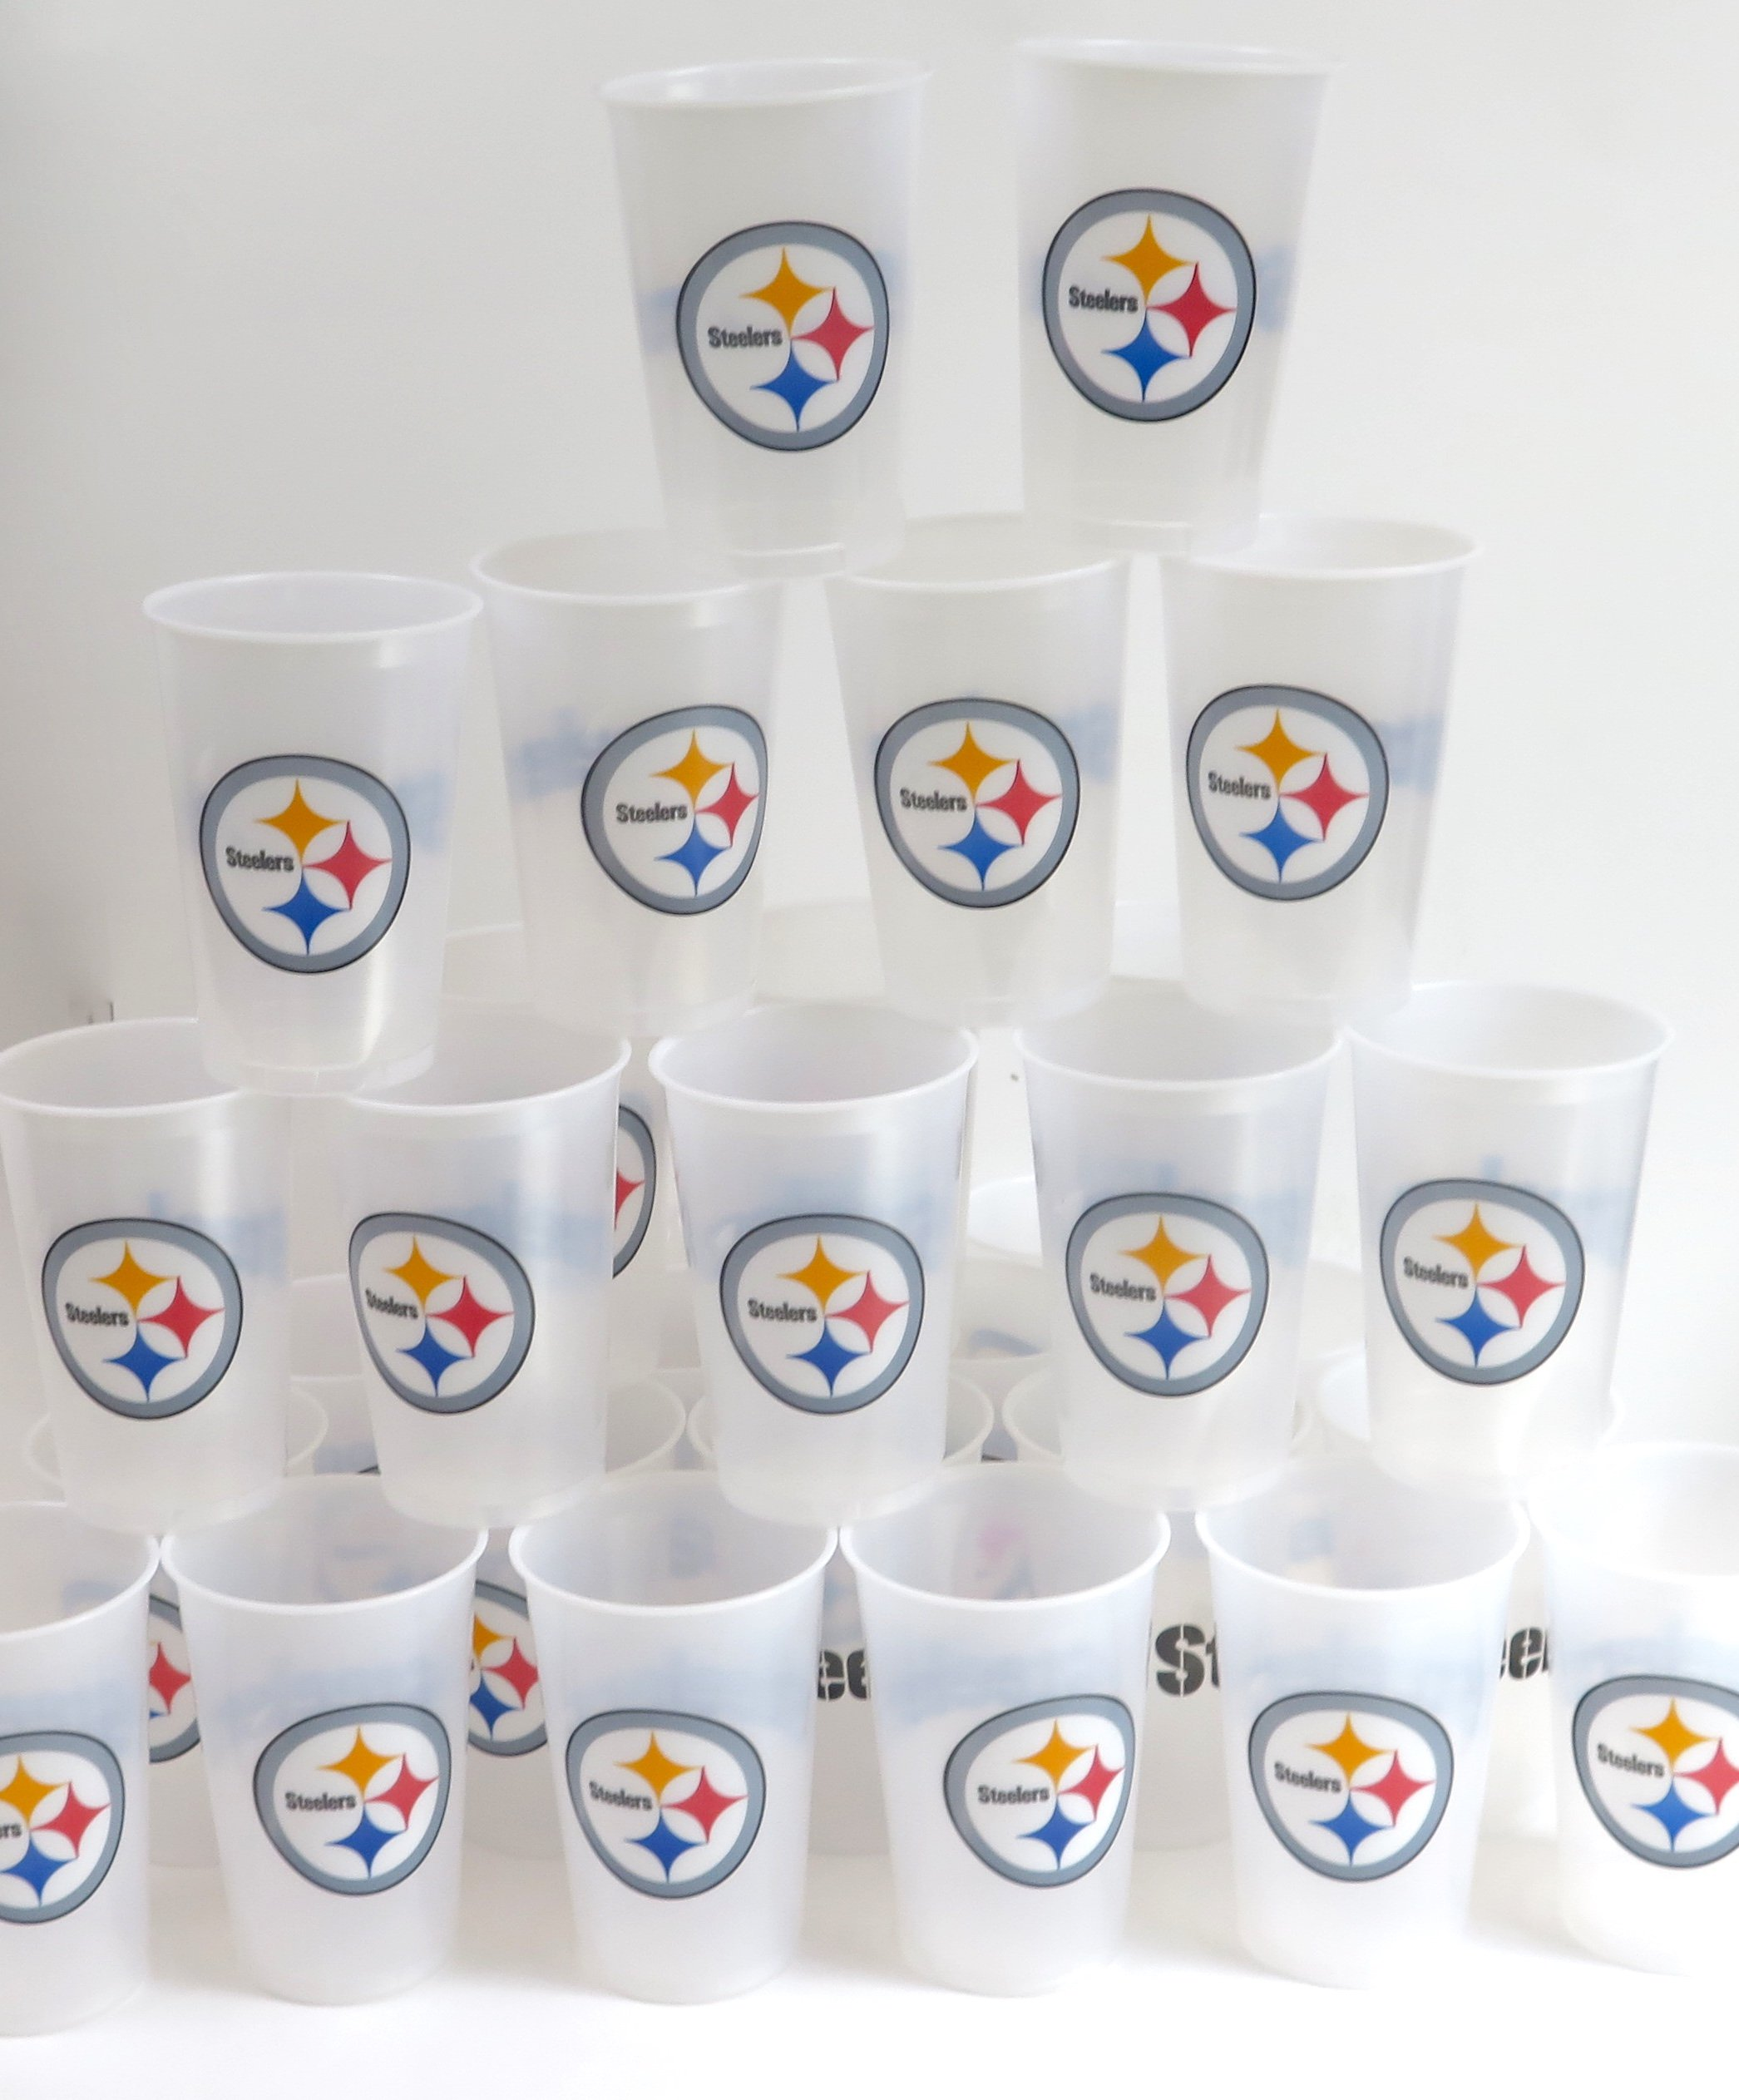 Pittsburgh Steelers barbecue cookout 4th of July Jumbo party cups set of 36. Large plastic colorful 18 oz. game day plastic cups